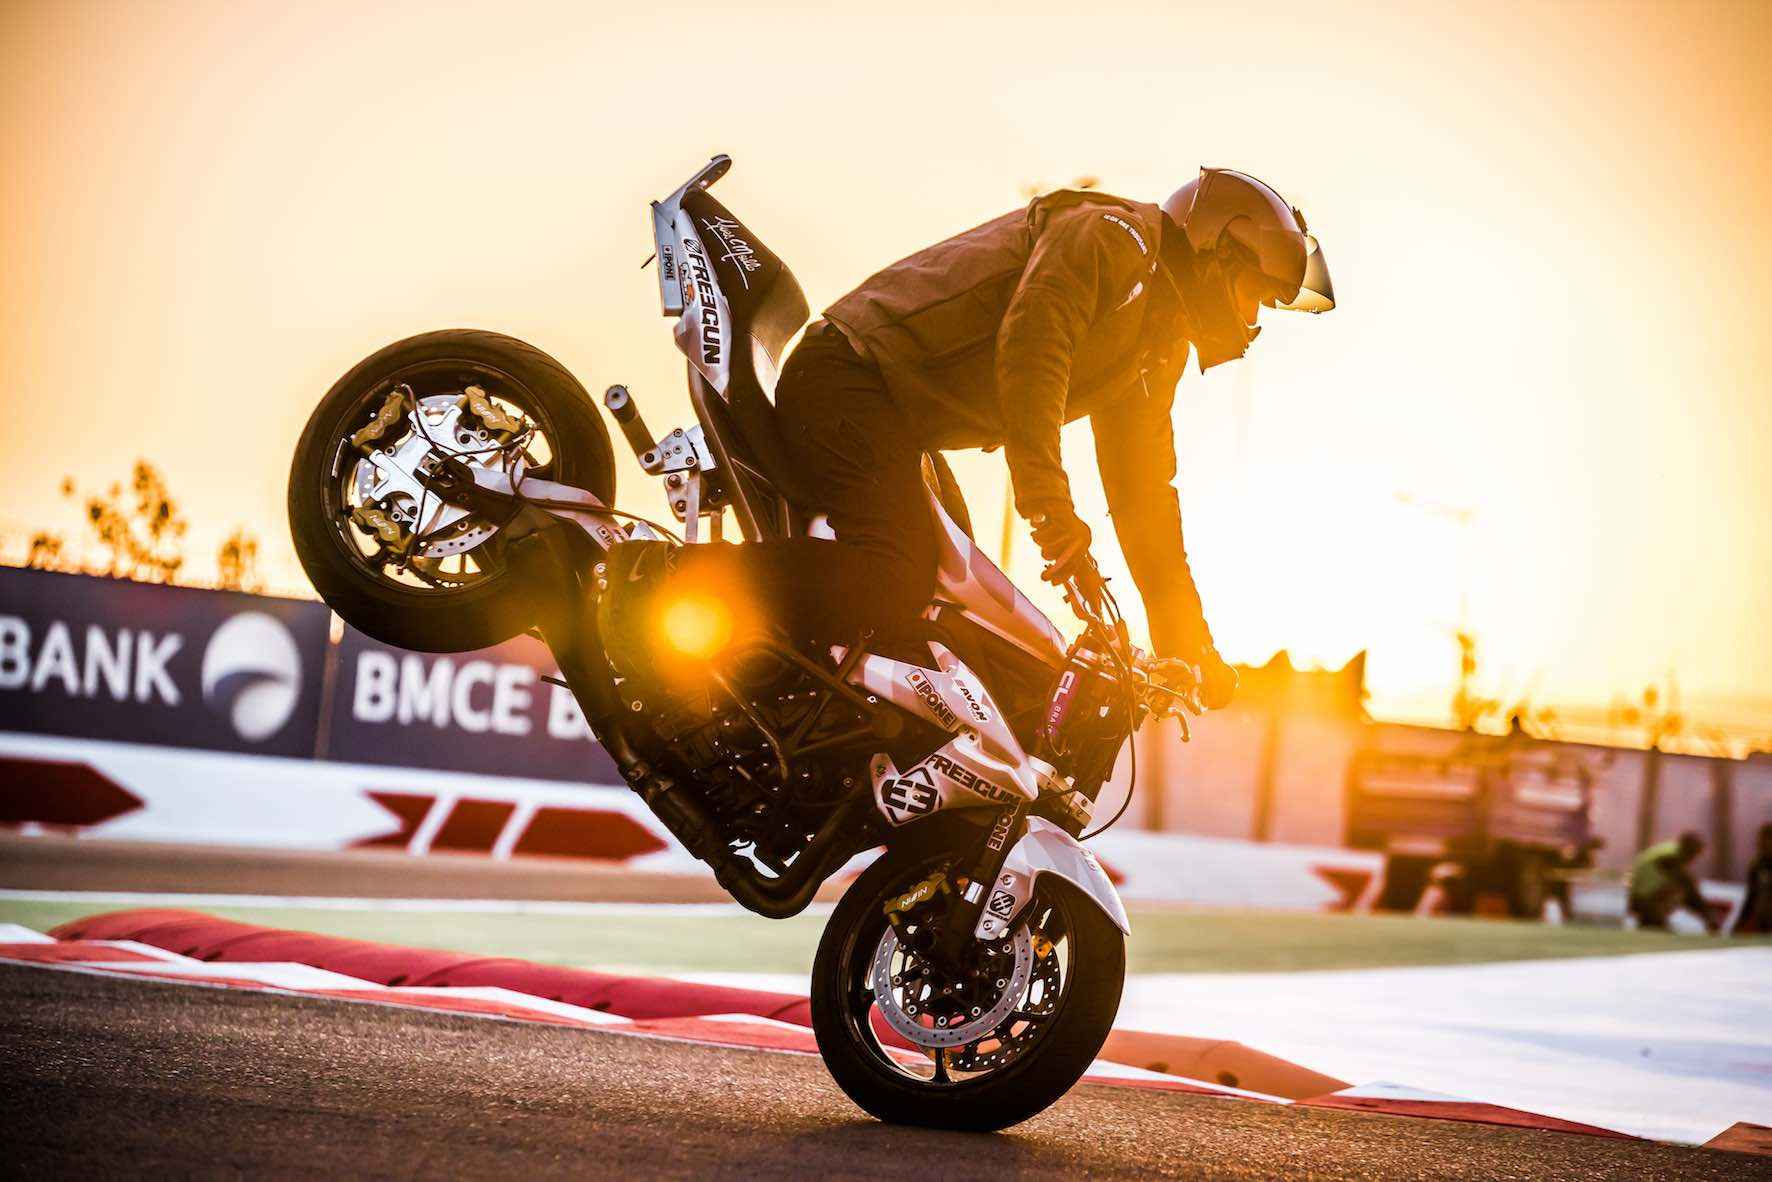 Back by popular demand – South Africa Bike Festival visitors can expect to see explosive freestyle performances per day from international Stunt & Wheelie Champion, Julien Welsch.